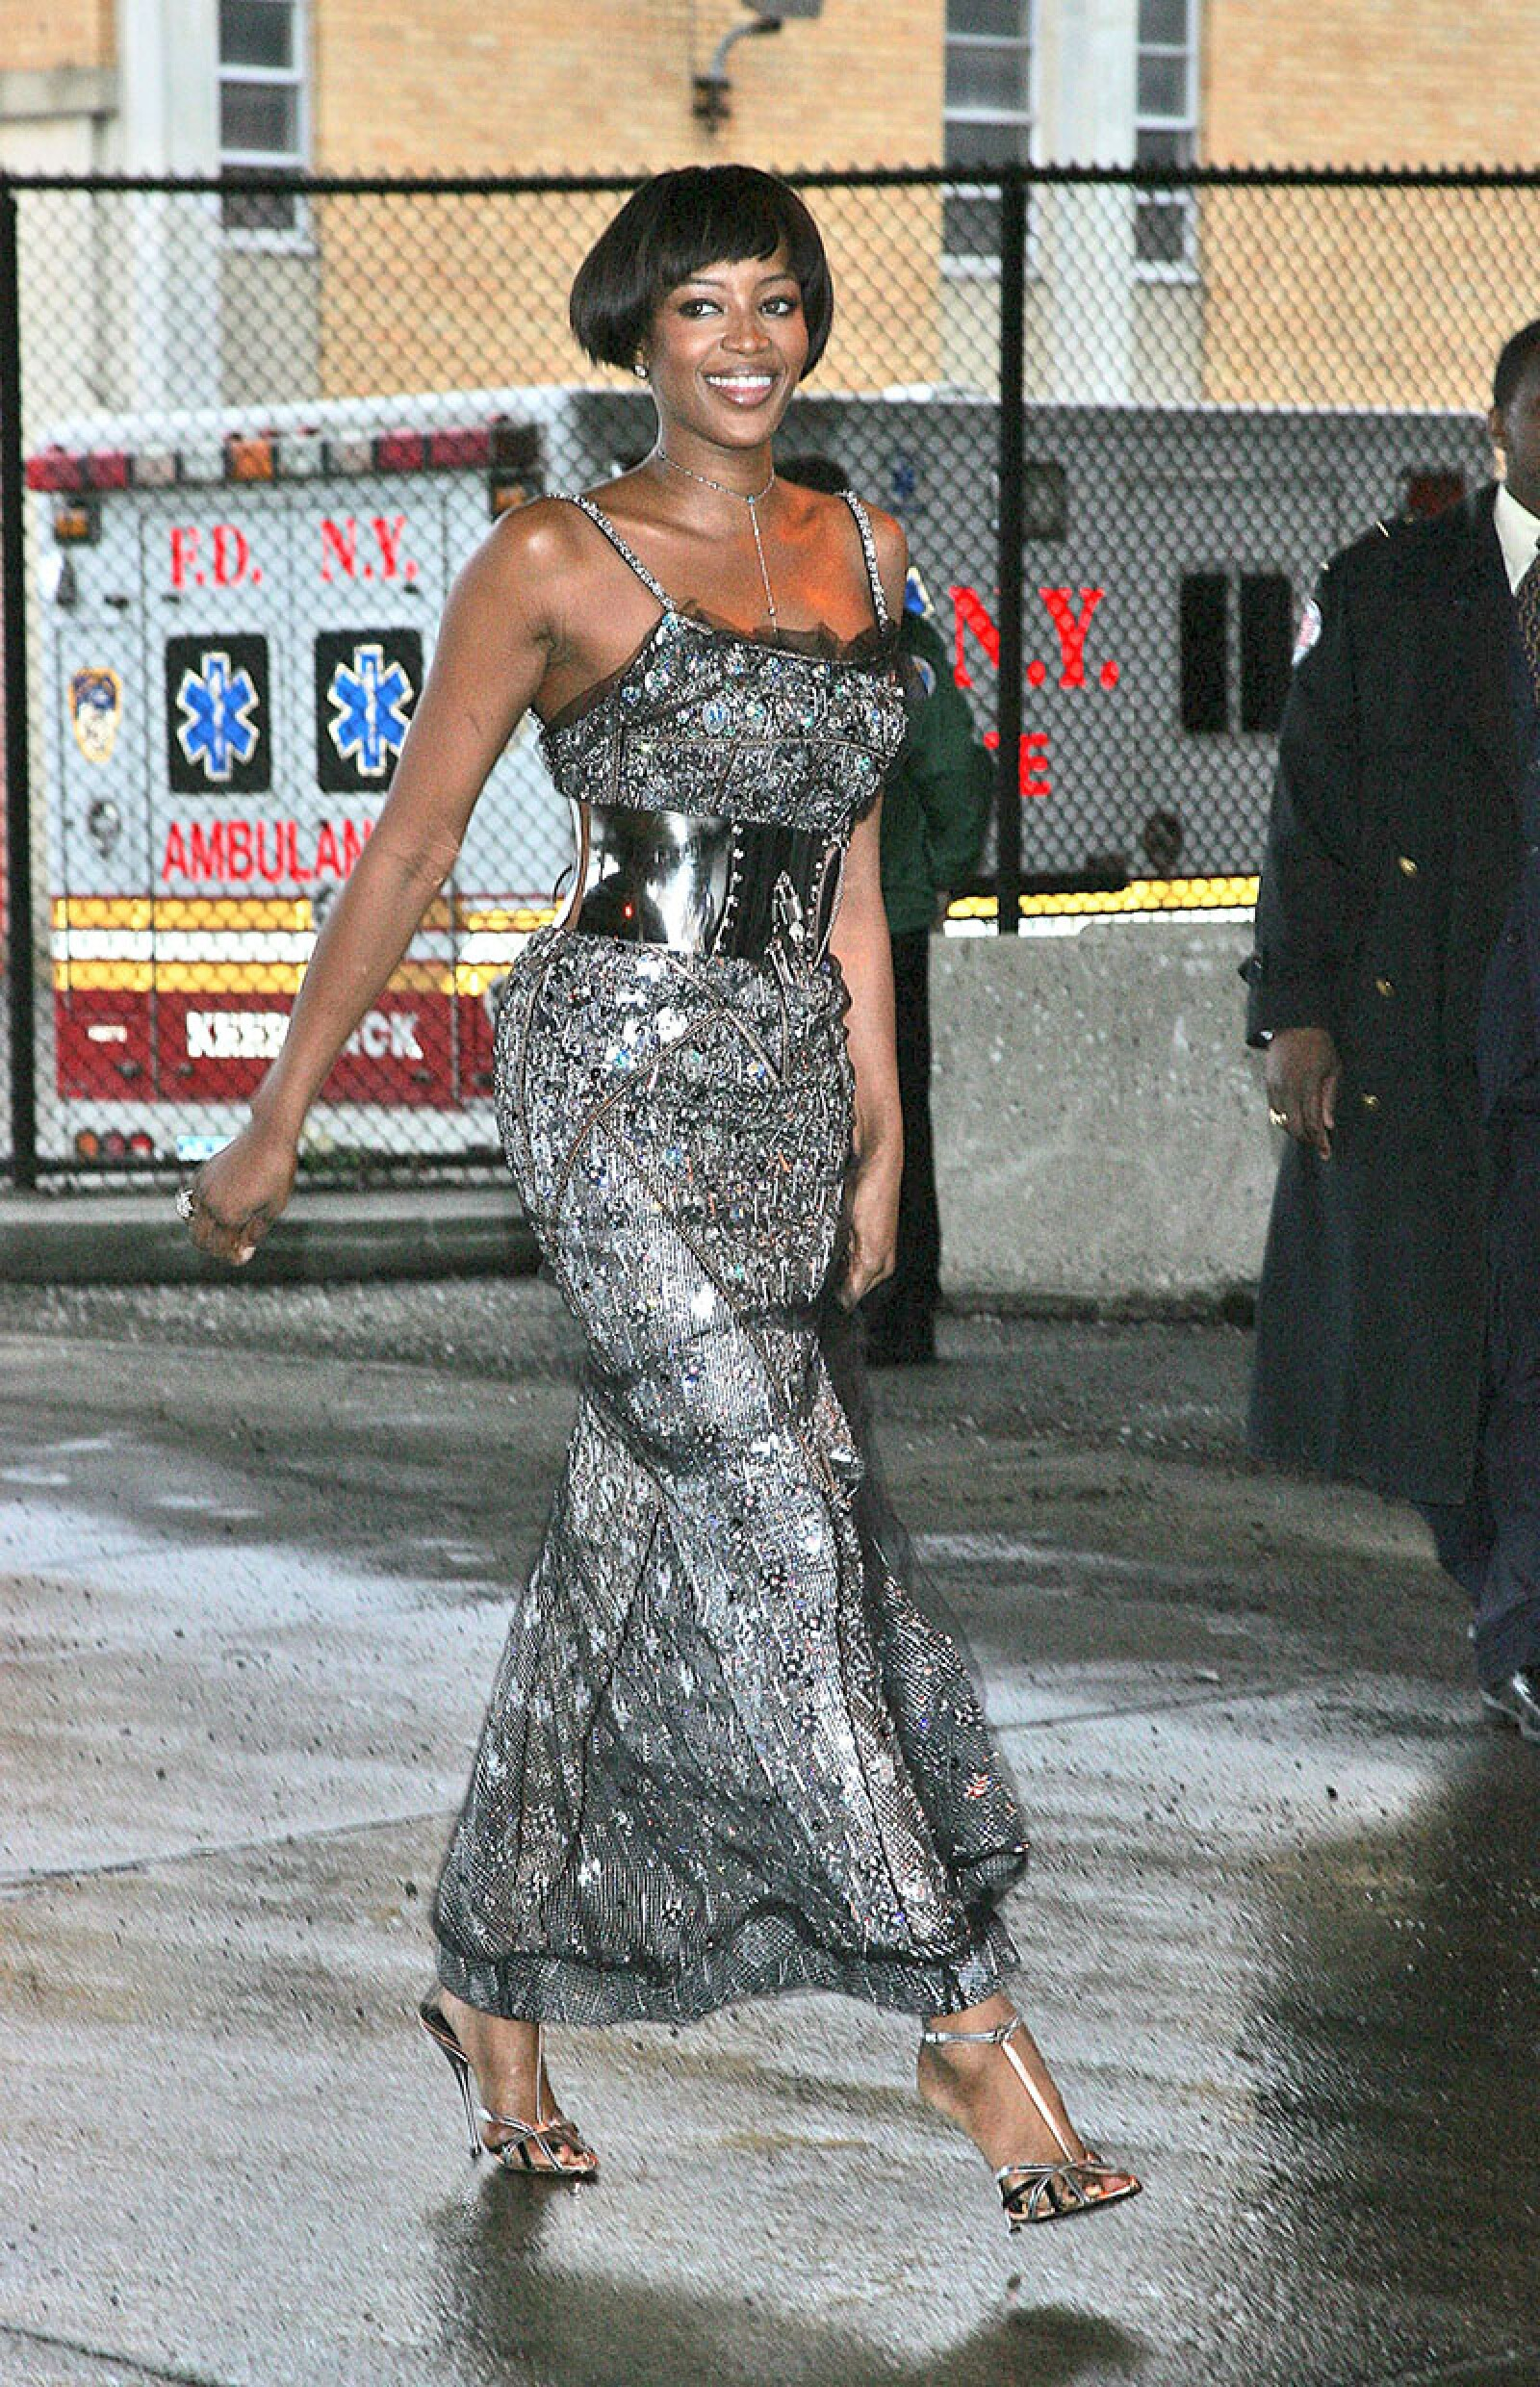 Naomi Campbell leaving after the fifth and final day of community service at the New York Sanitation Department, New York, America - 23 Mar 2007